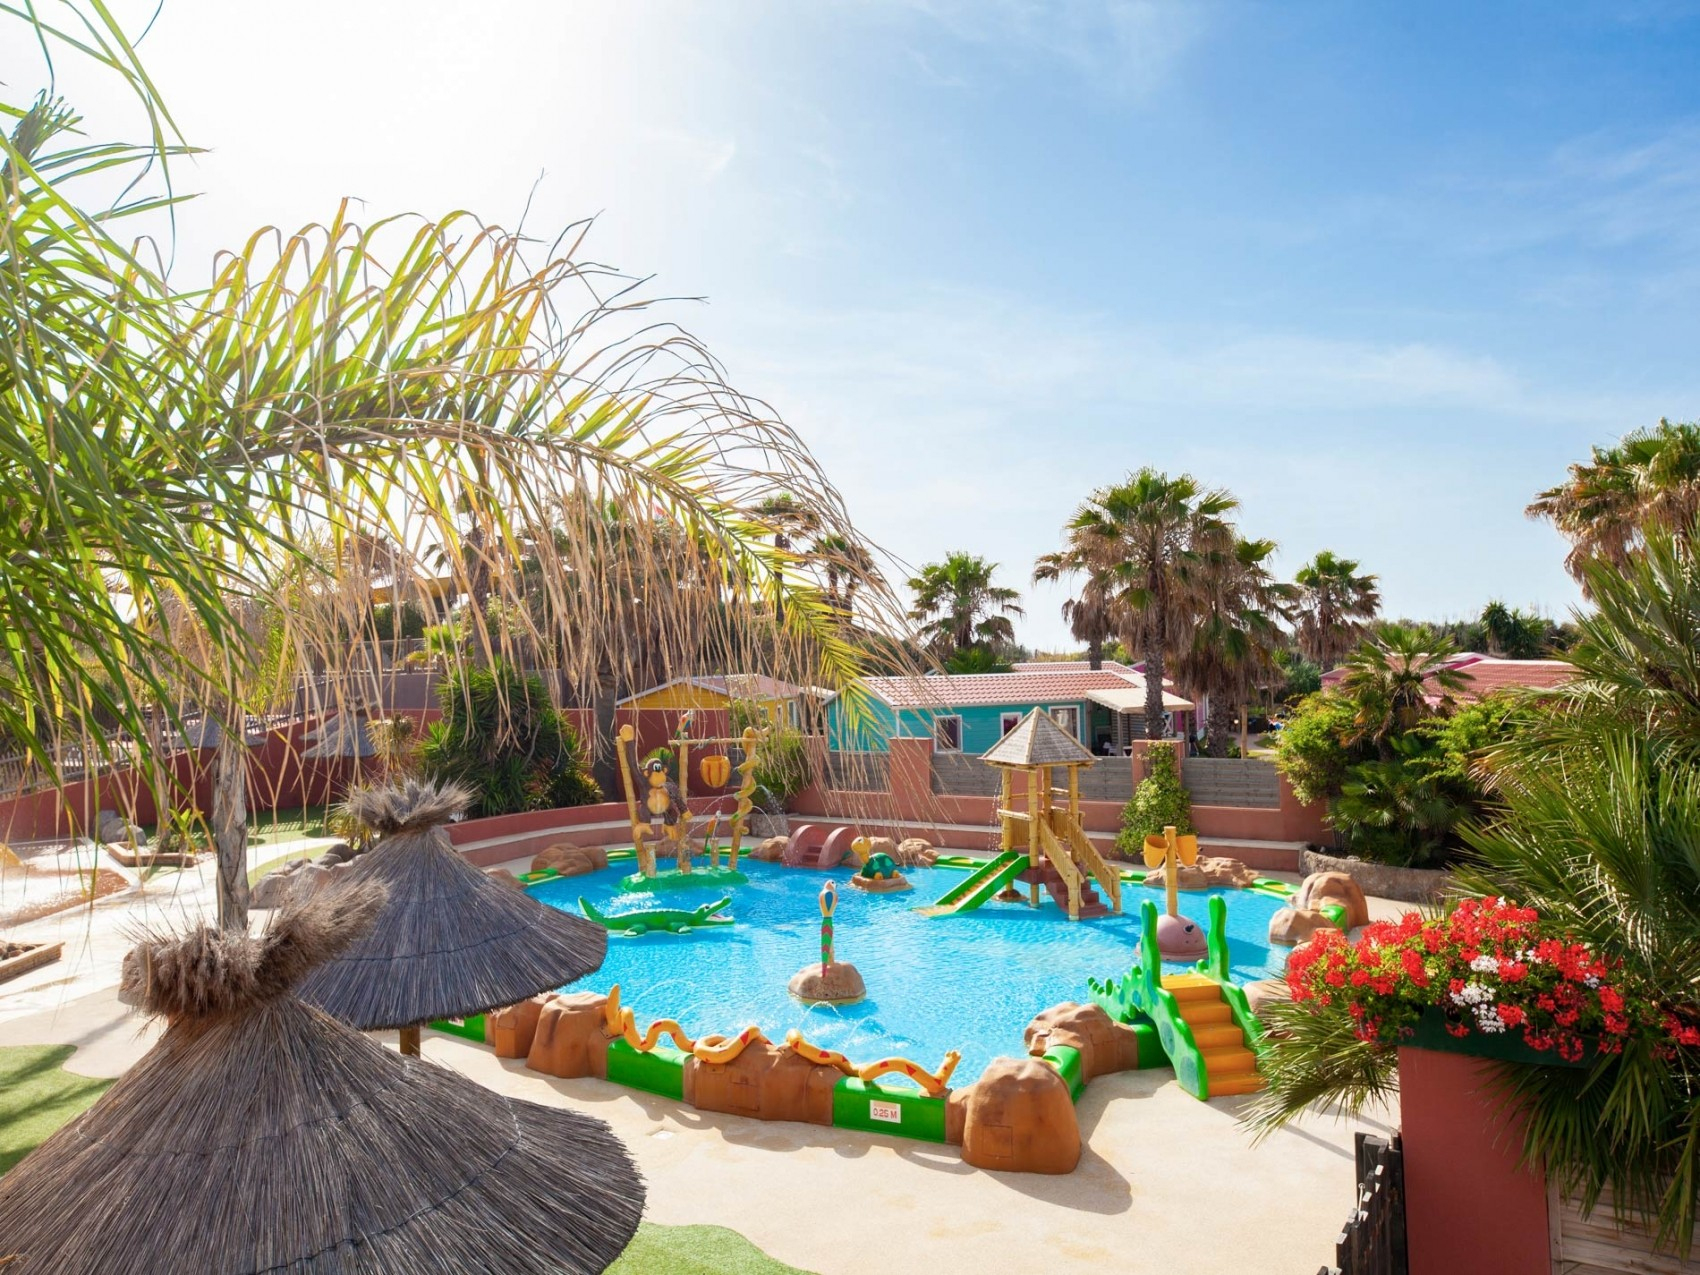 Camping Swimming Pool Sérignan Plage, Languedoc-Roussillon encequiconcerne Aloha Piscine